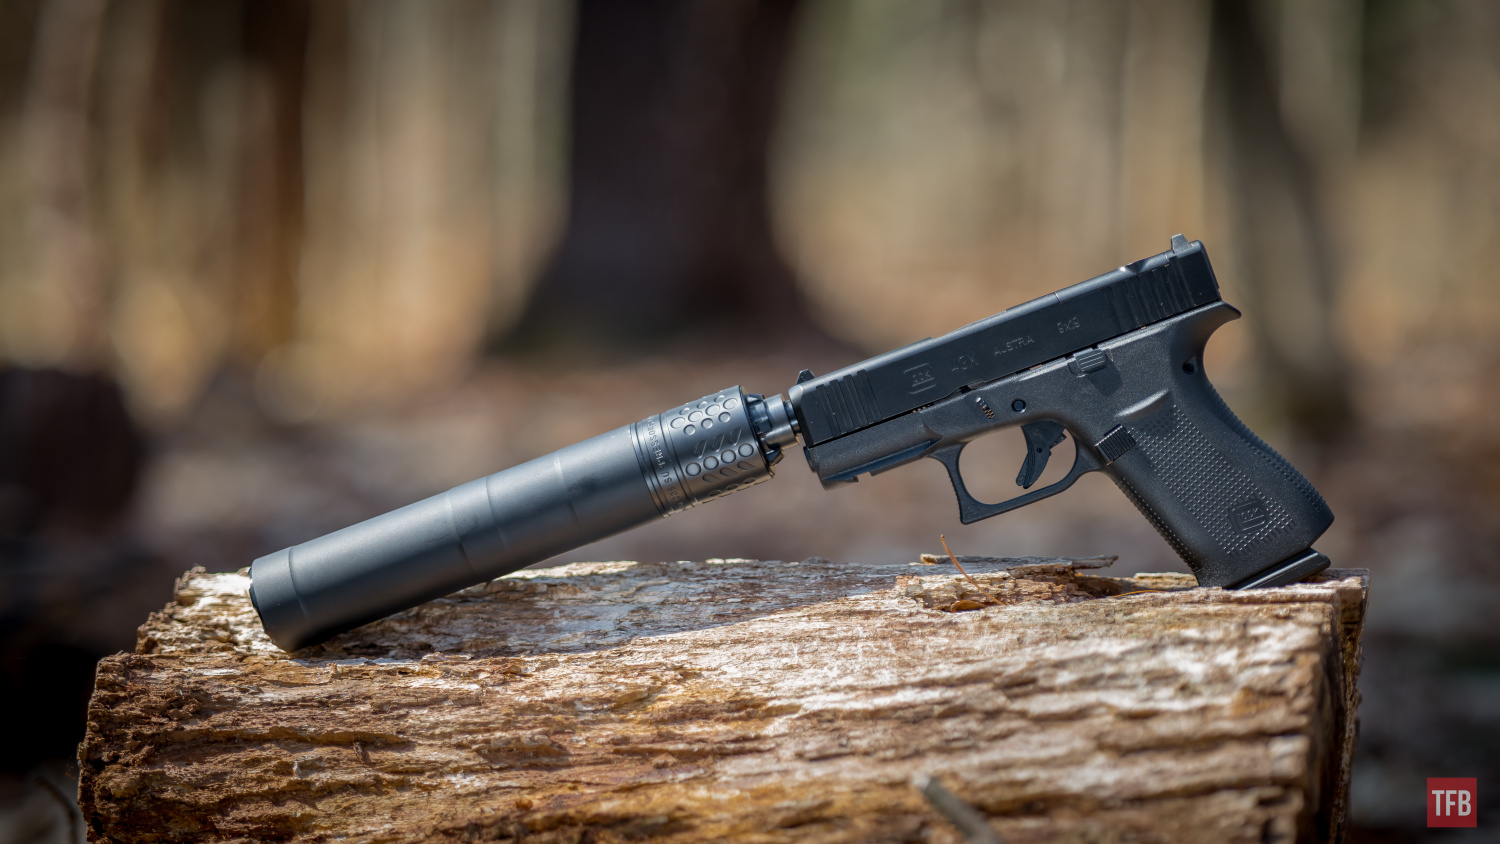 SILENCER SATURDAY #170: CGS MOD9 - Library Quiet!